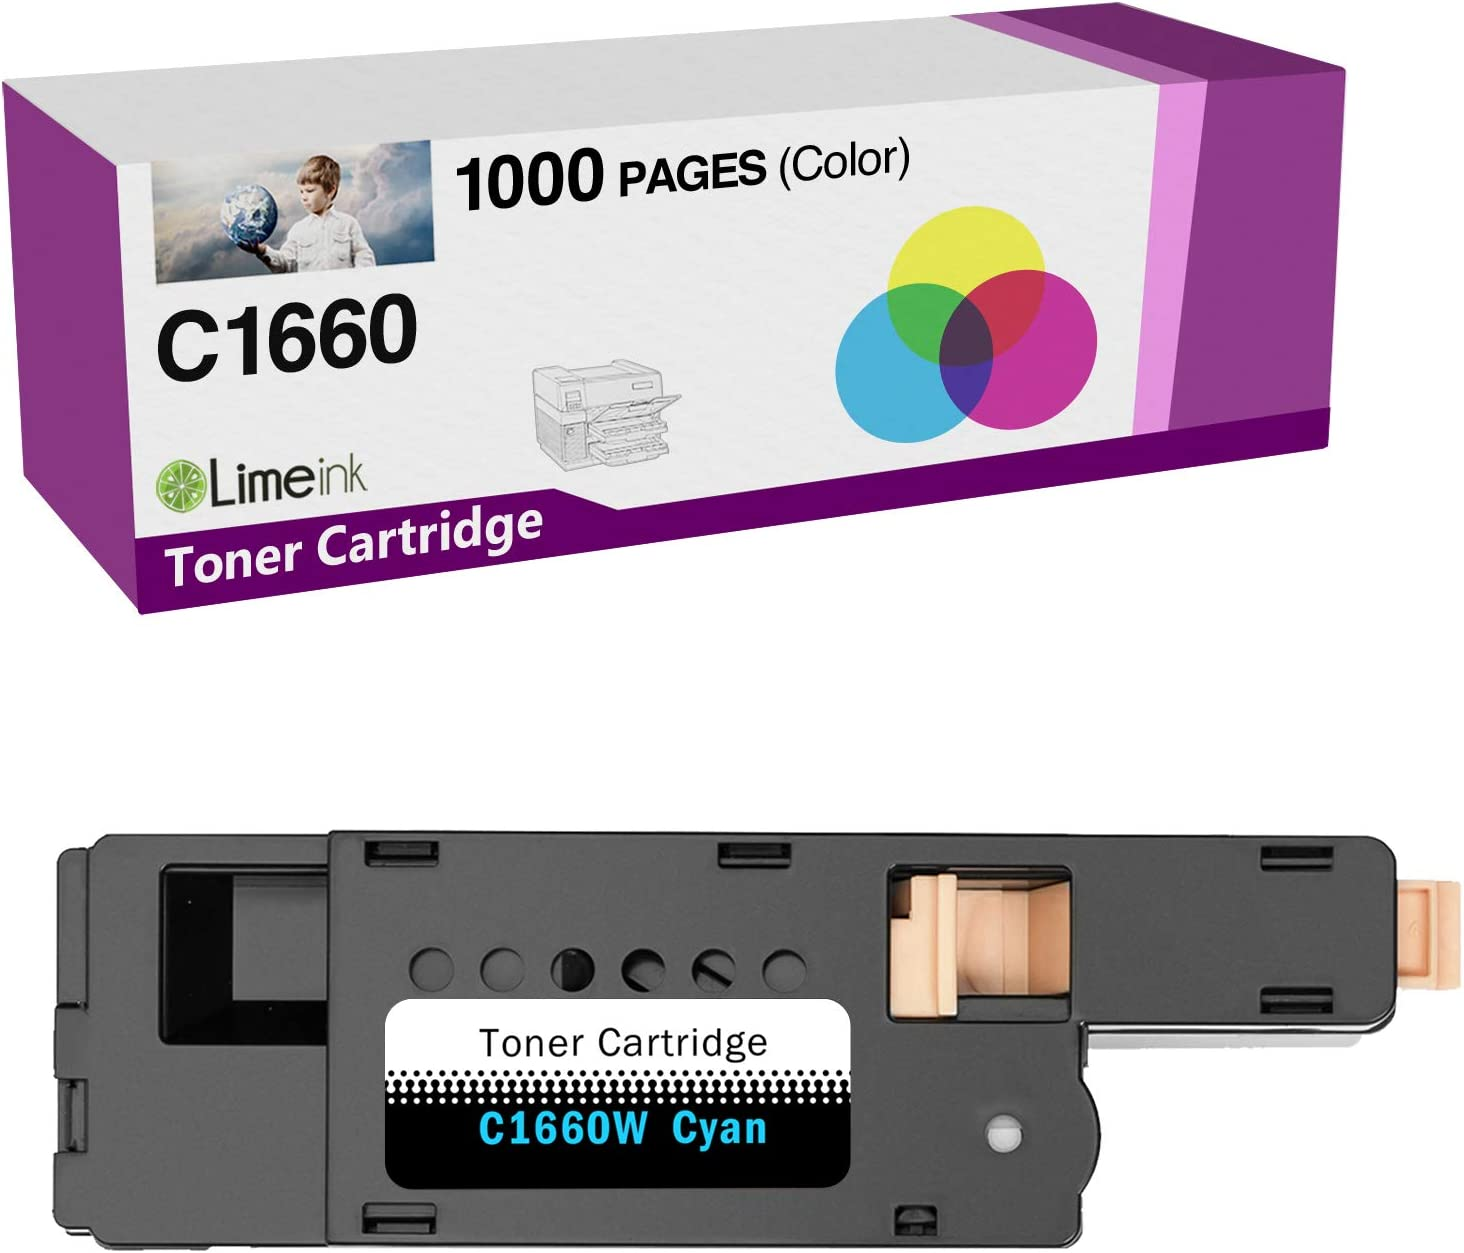 Limeink 1 Cyan Compatible High Yield Laser Toner Cartridges Replacement for Dell C1660 4G9HP Compatible with C1660 C1660W C1660cnw 1660 1660W 1660cnw Printers